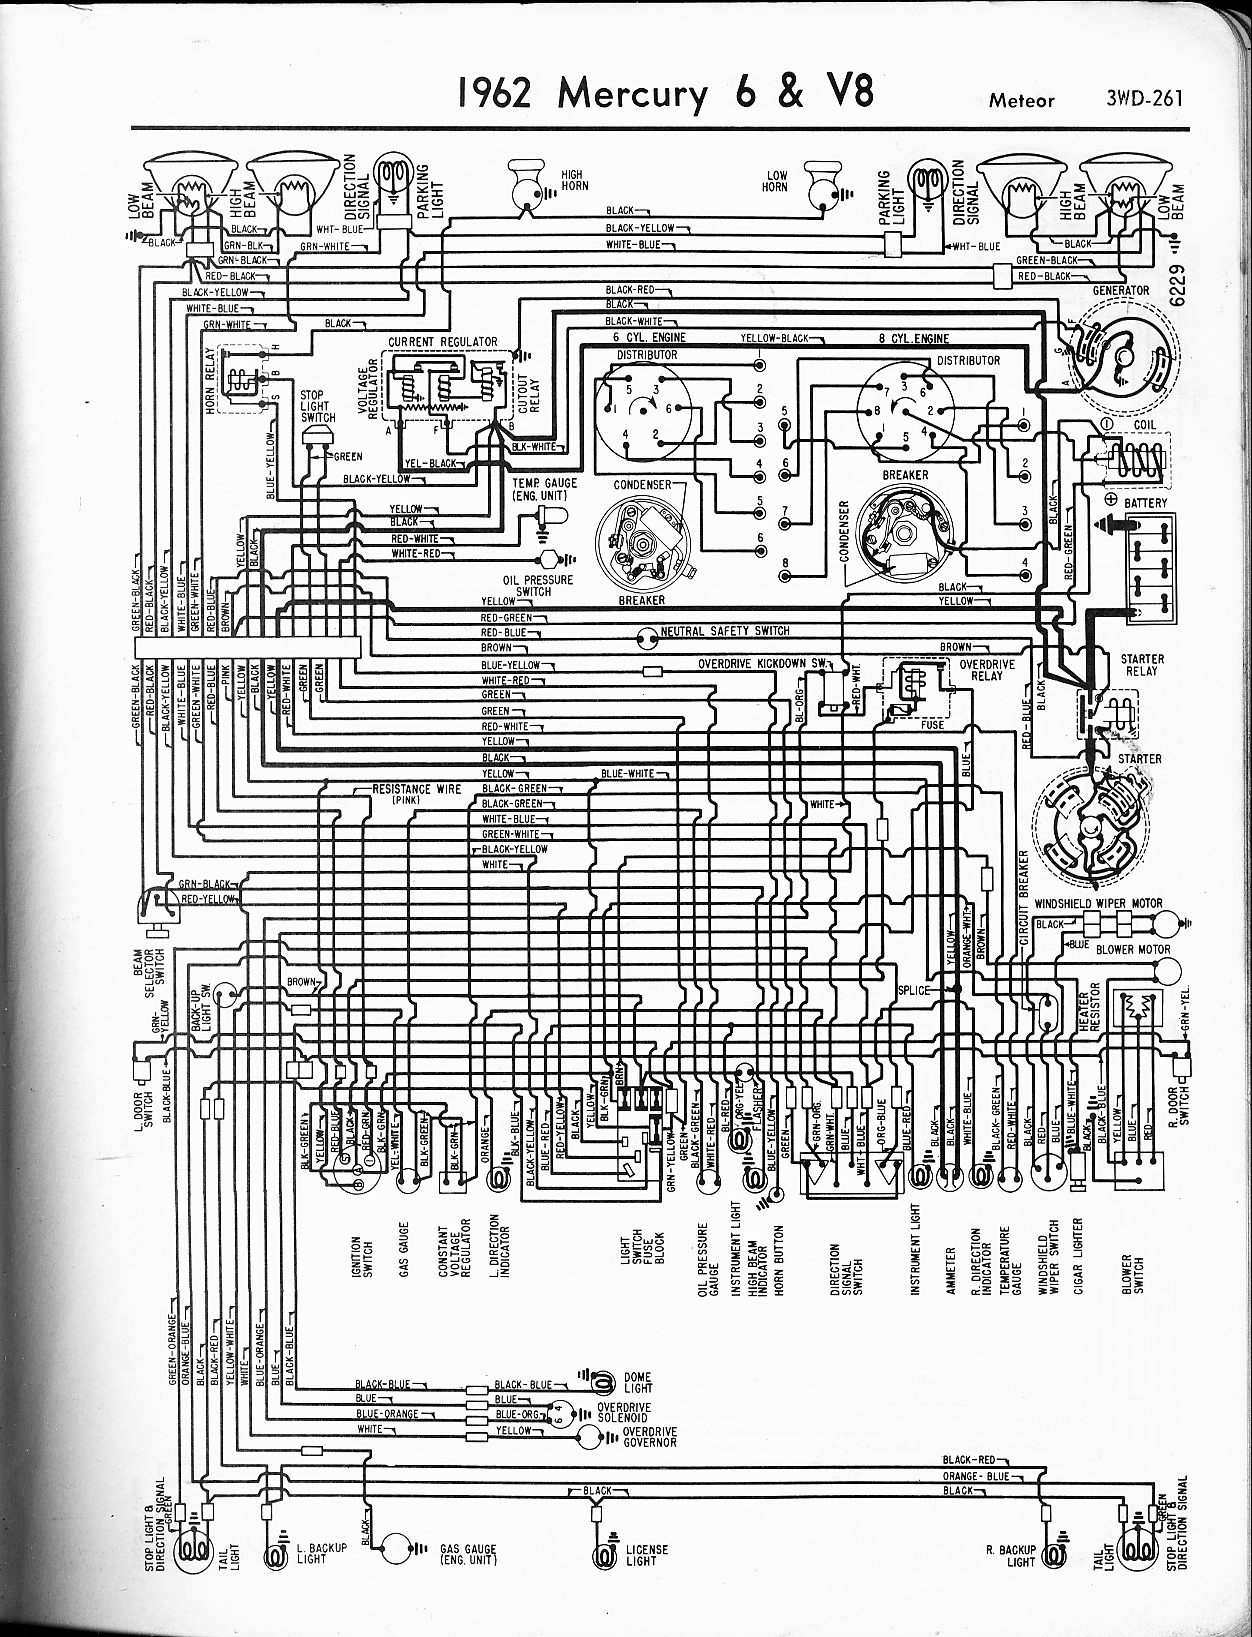 1966 Mercury Wiring Diagram - Sainsmart 8 Channel Relay Wiring Diagram -  stereoa.2014ok.jeanjaures37.frWiring Diagram